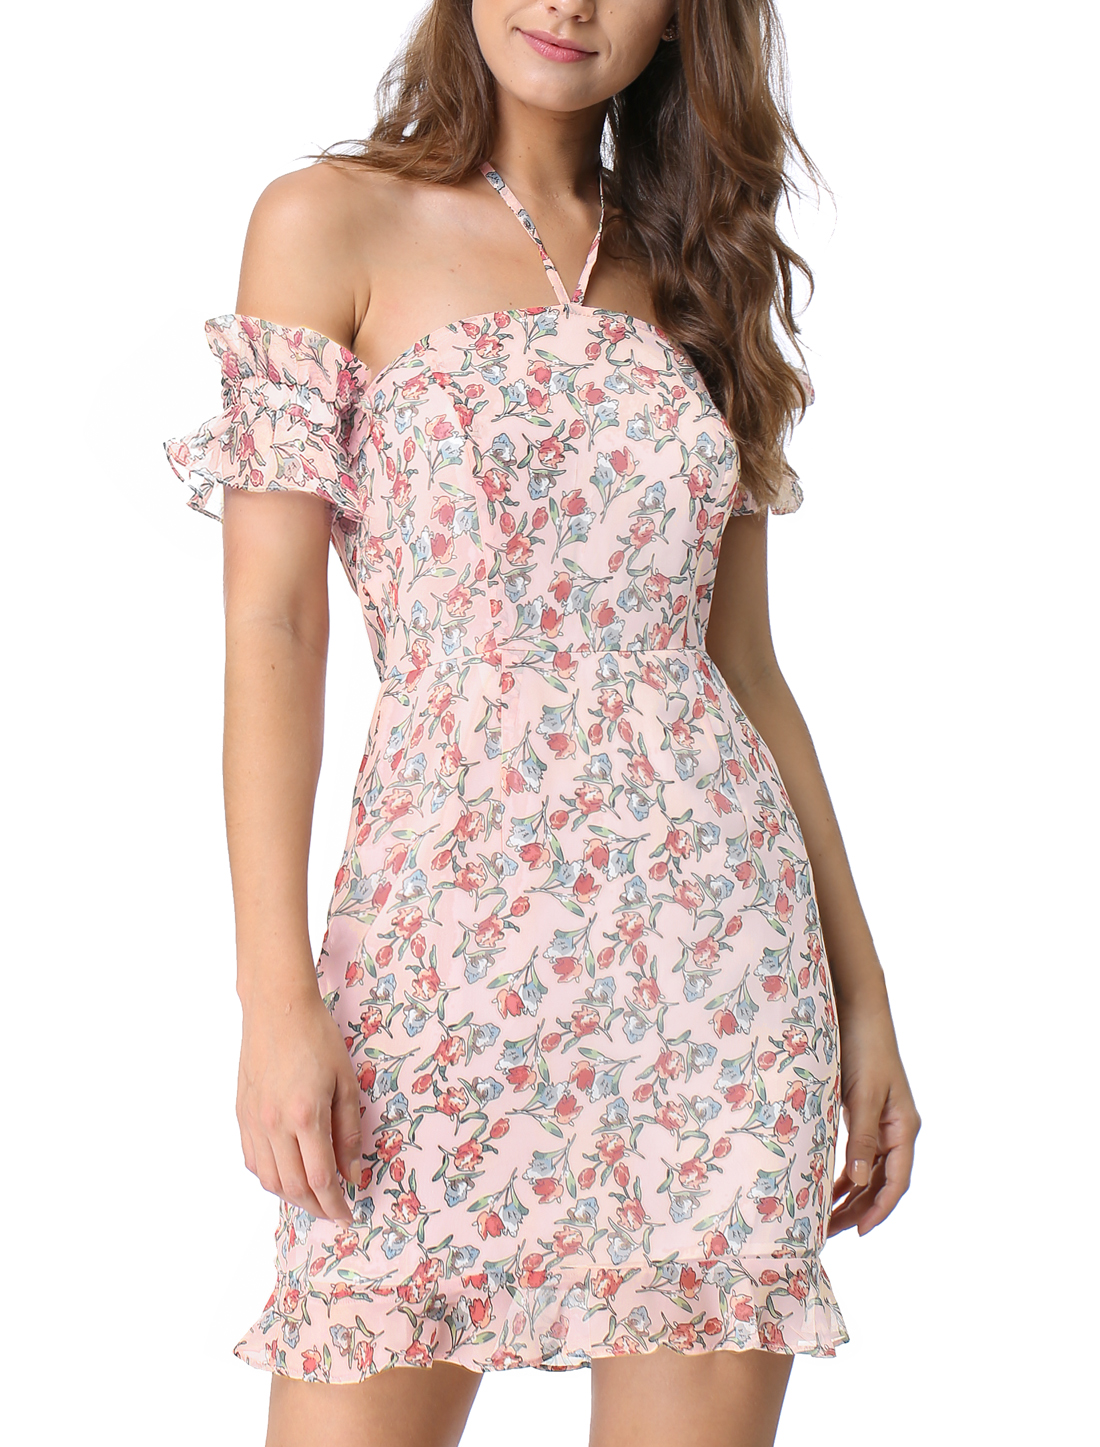 Women's Floral Print Strap Off Shoulder Ruffled Halter Mini Dress Pink XS